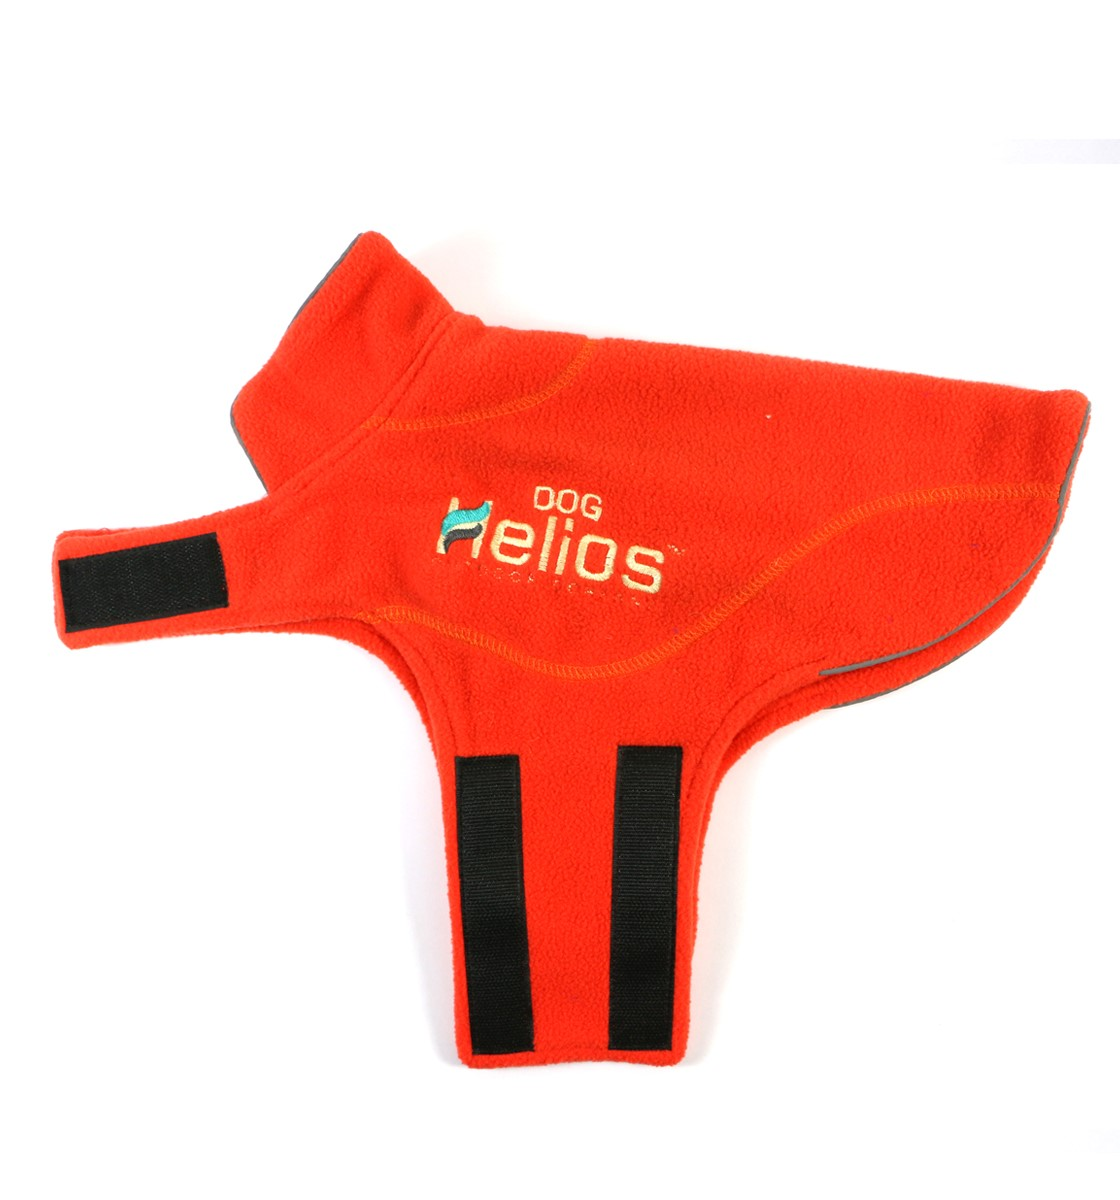 Helios  Polar Fleece Jacket - Medium